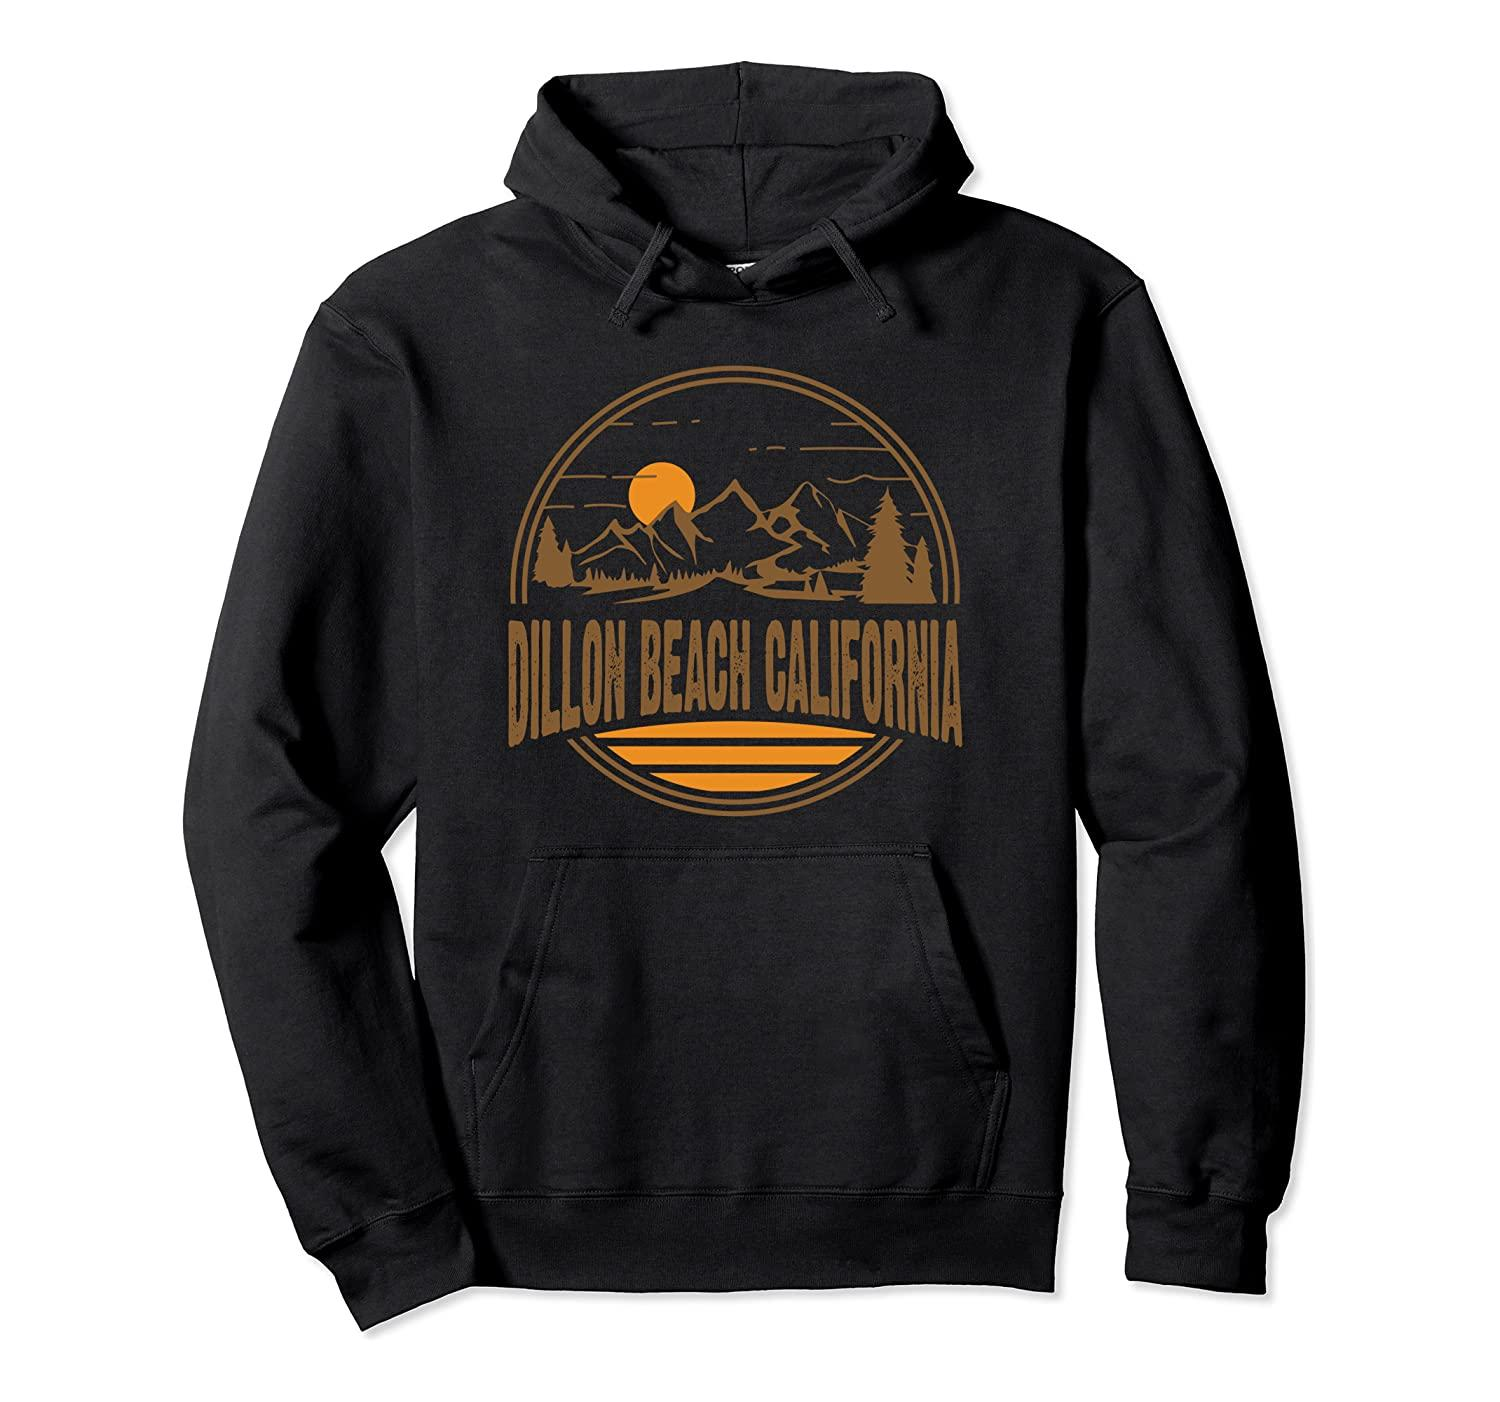 Vintage Dillon Beach California Mountain Hiking Stampa Pullover con cappuccio unisex di formato S-5XL con colore nero / grigio / blu / azzurro reale / Scuro Heather